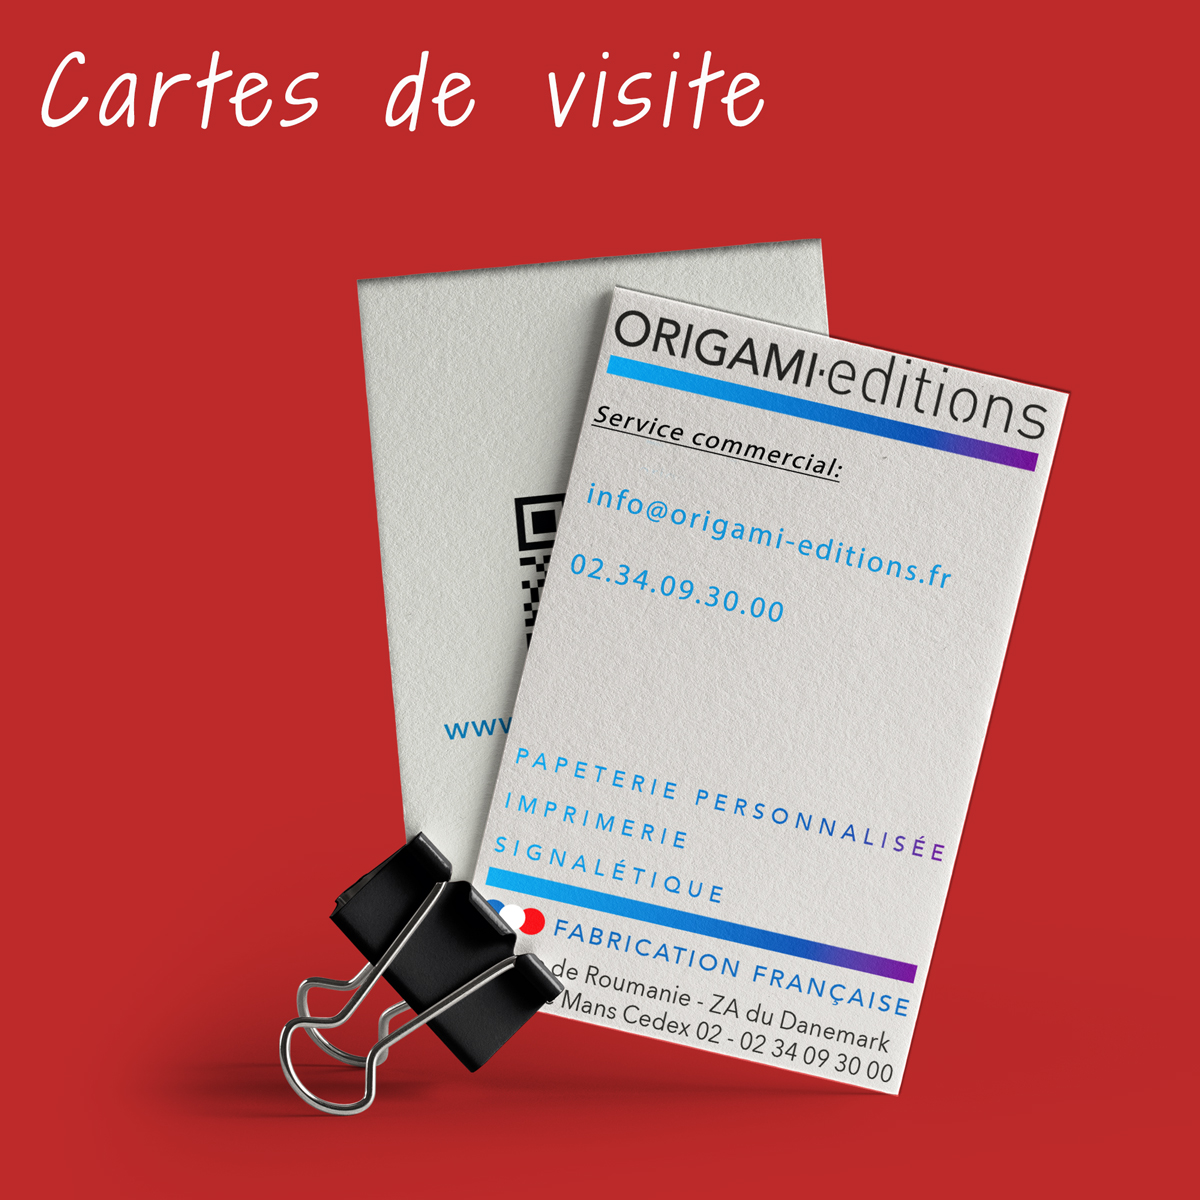 Cartesdevisite